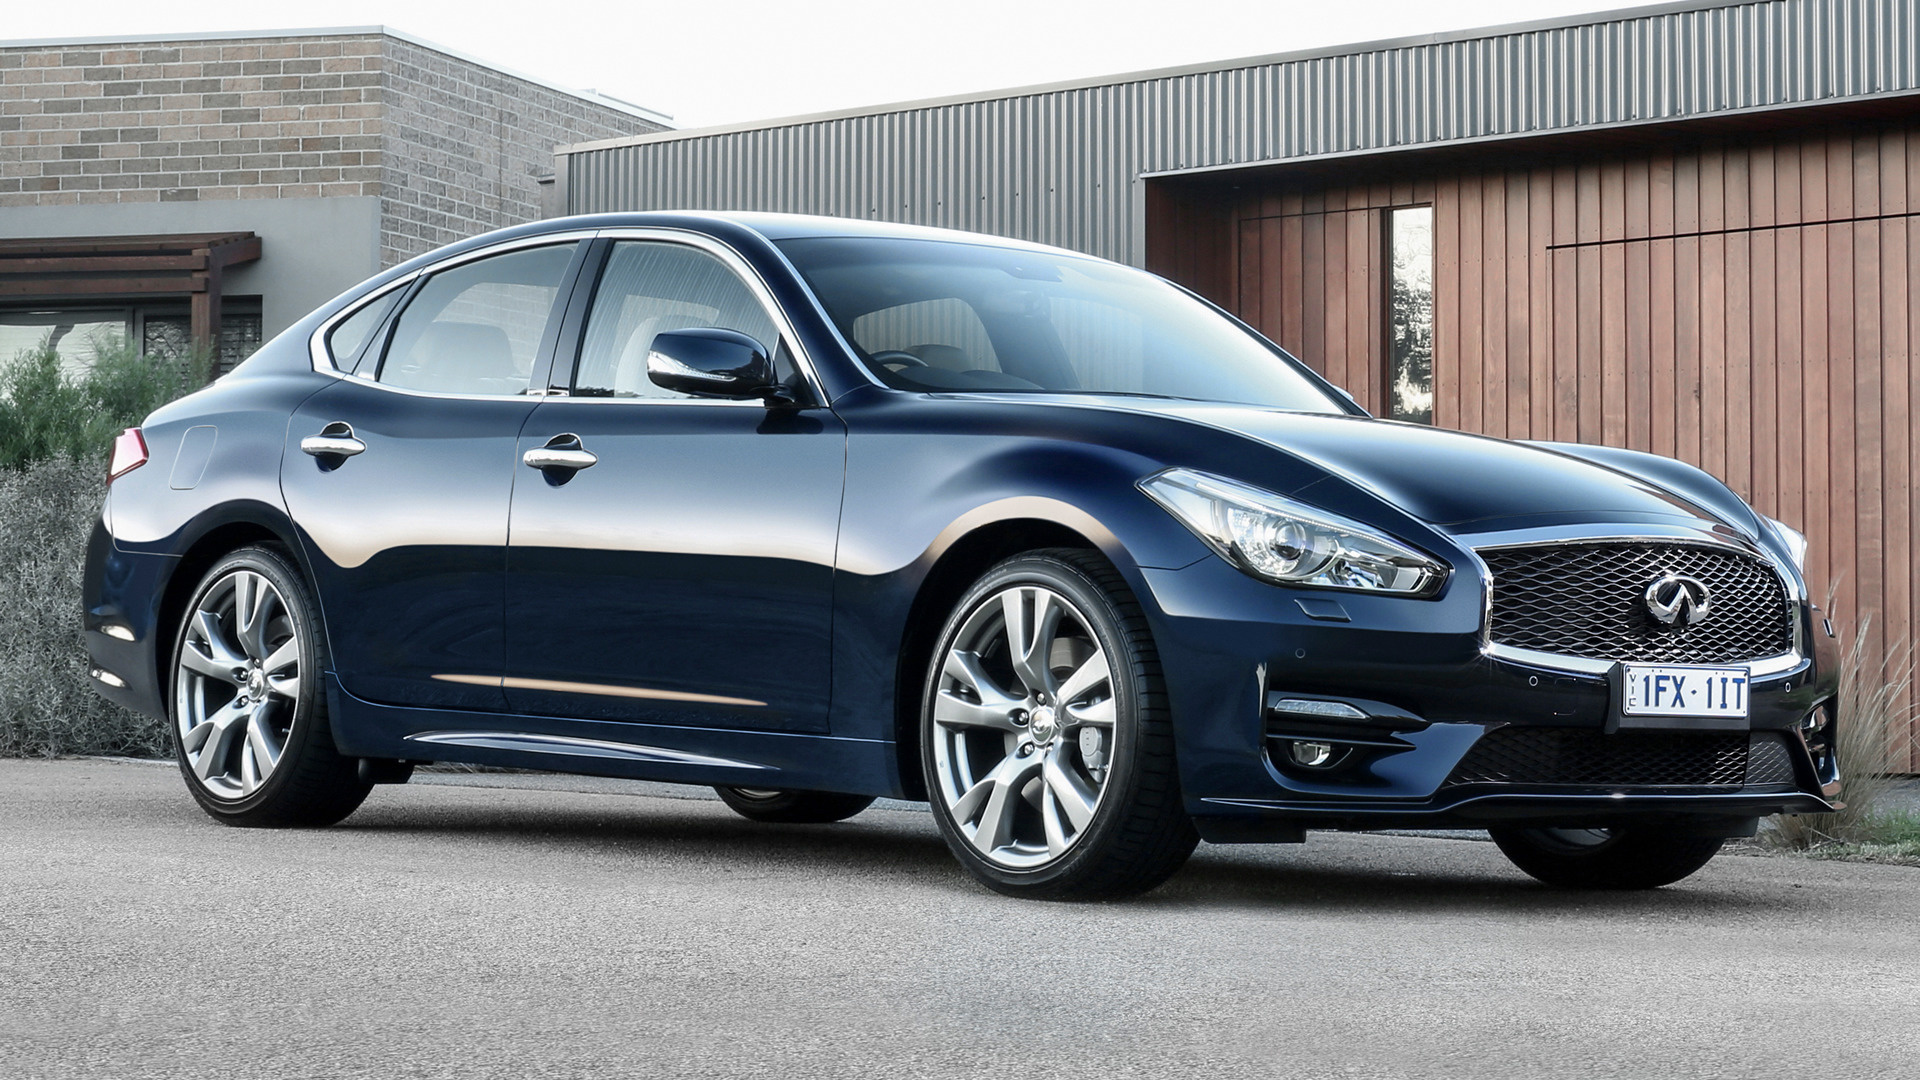 2016 Infiniti Q70 Sport Au Wallpapers And Hd Images